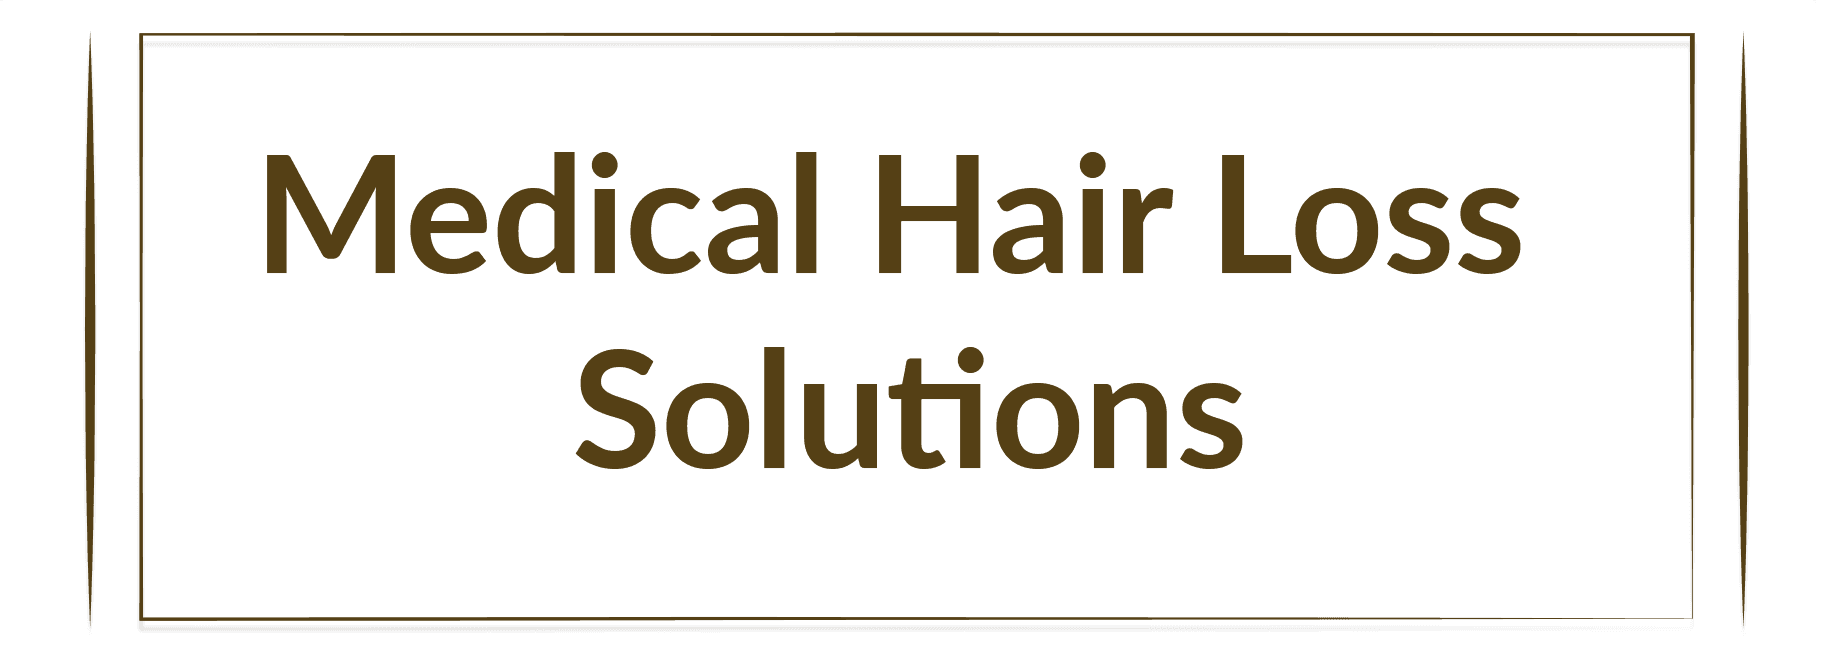 Medical Hair Loss Solutions